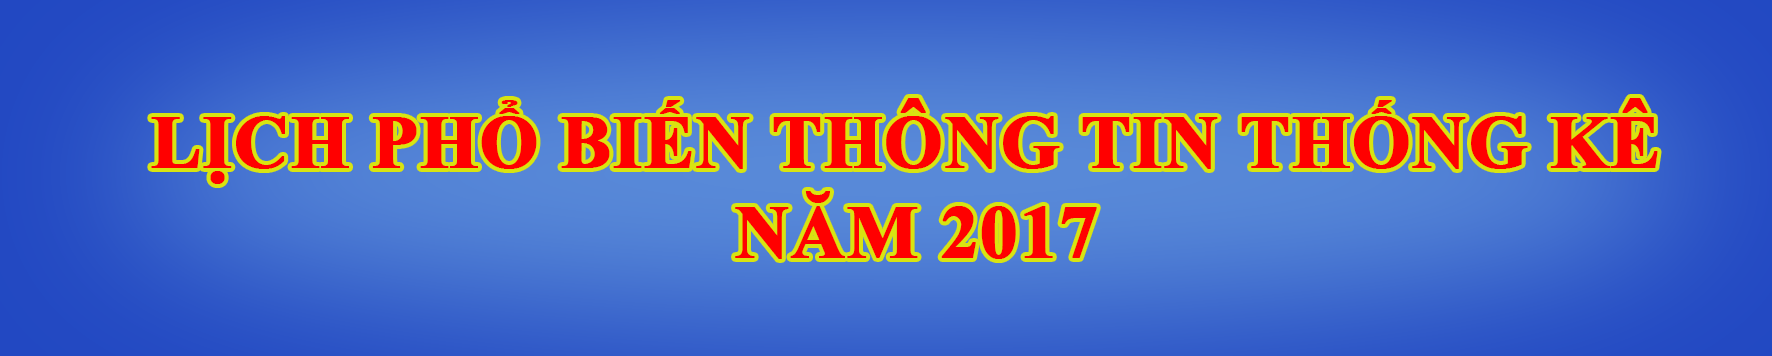 http://ctk.thanhhoa.gov.vn/portal/Pages/Lich.aspx